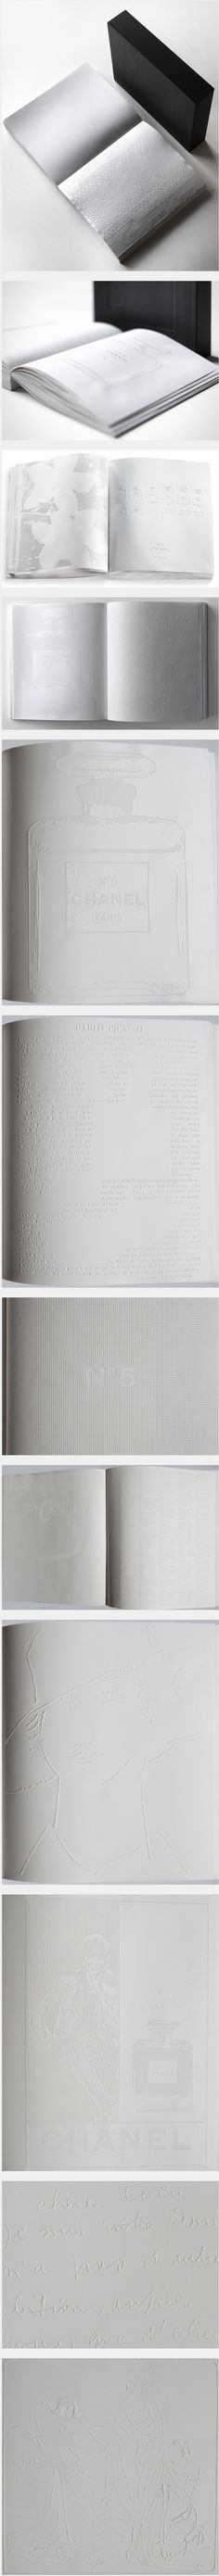 Irma Boom book for Chanel that contains no ink. All pages were embossed using aluminum plates and an old letterpress.